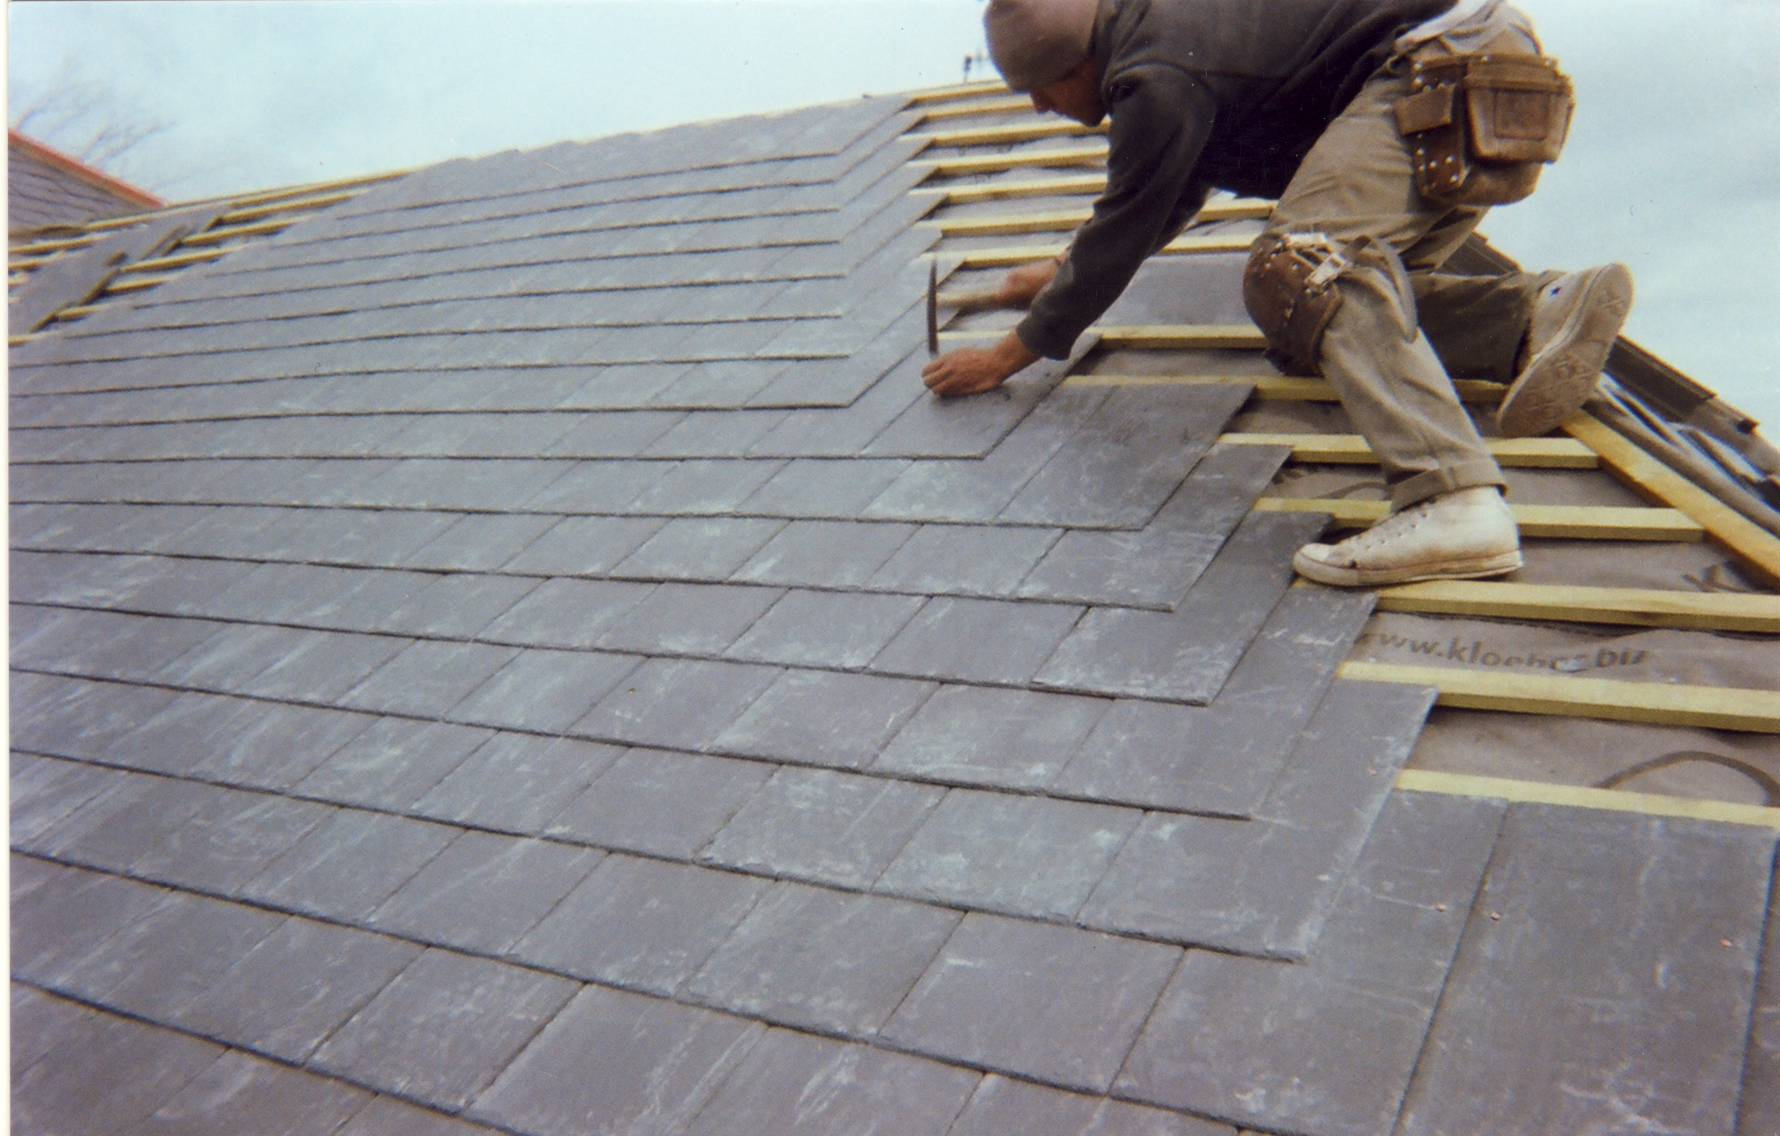 Why You Should Check a Roofing Contractor's Credential